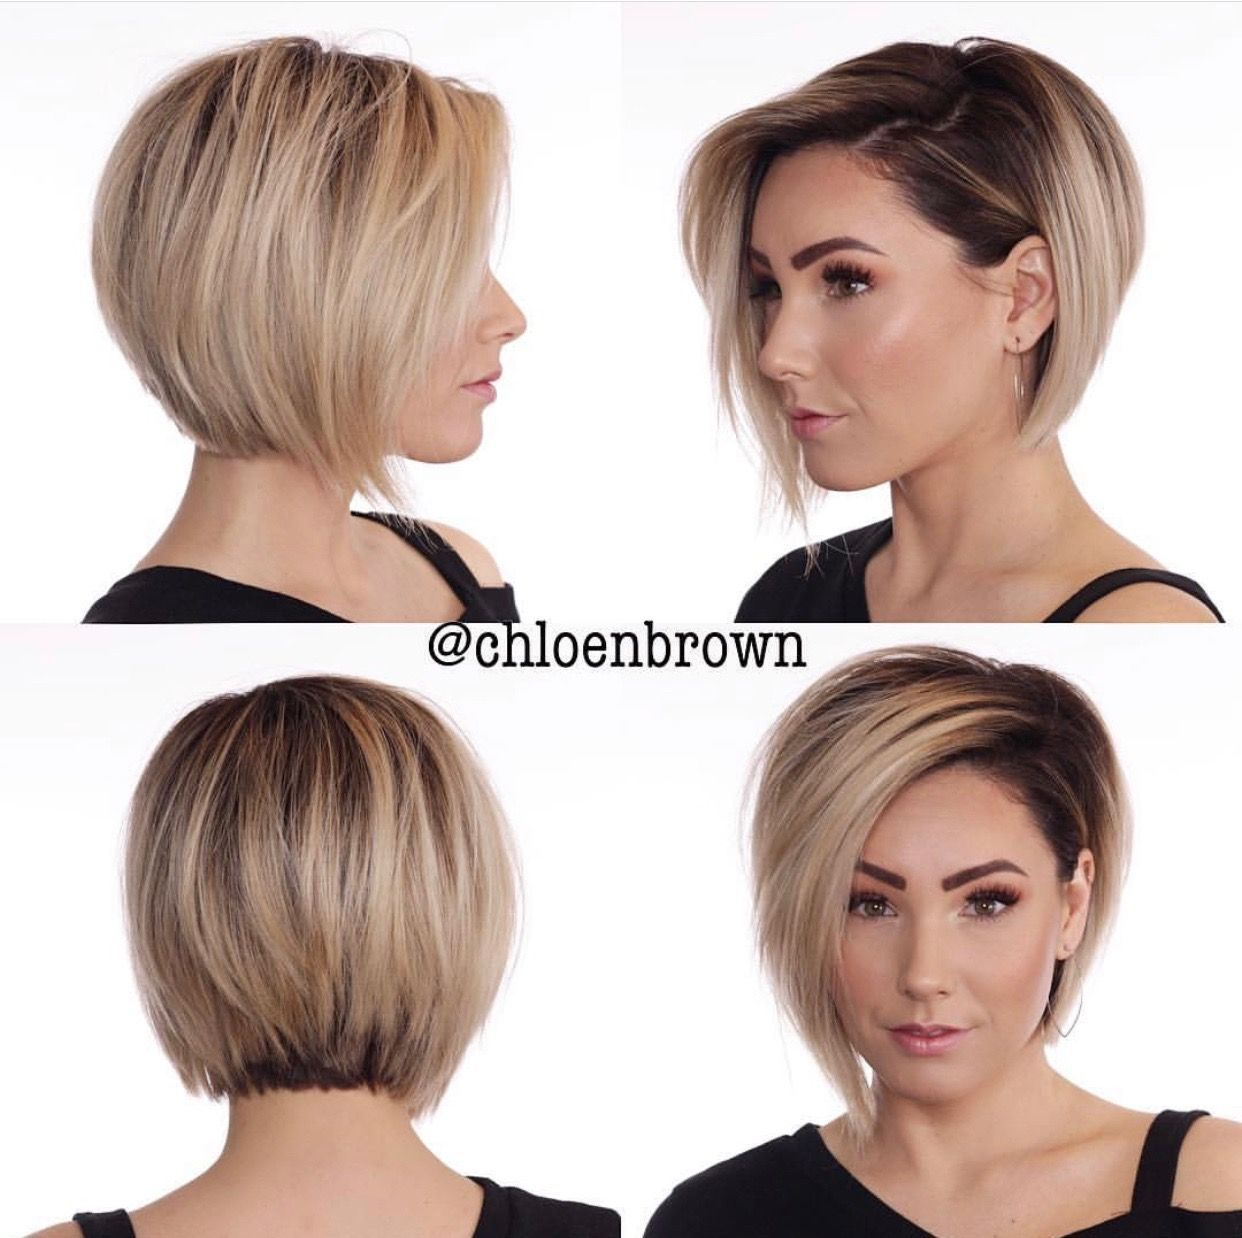 Pin on Hair colour/style